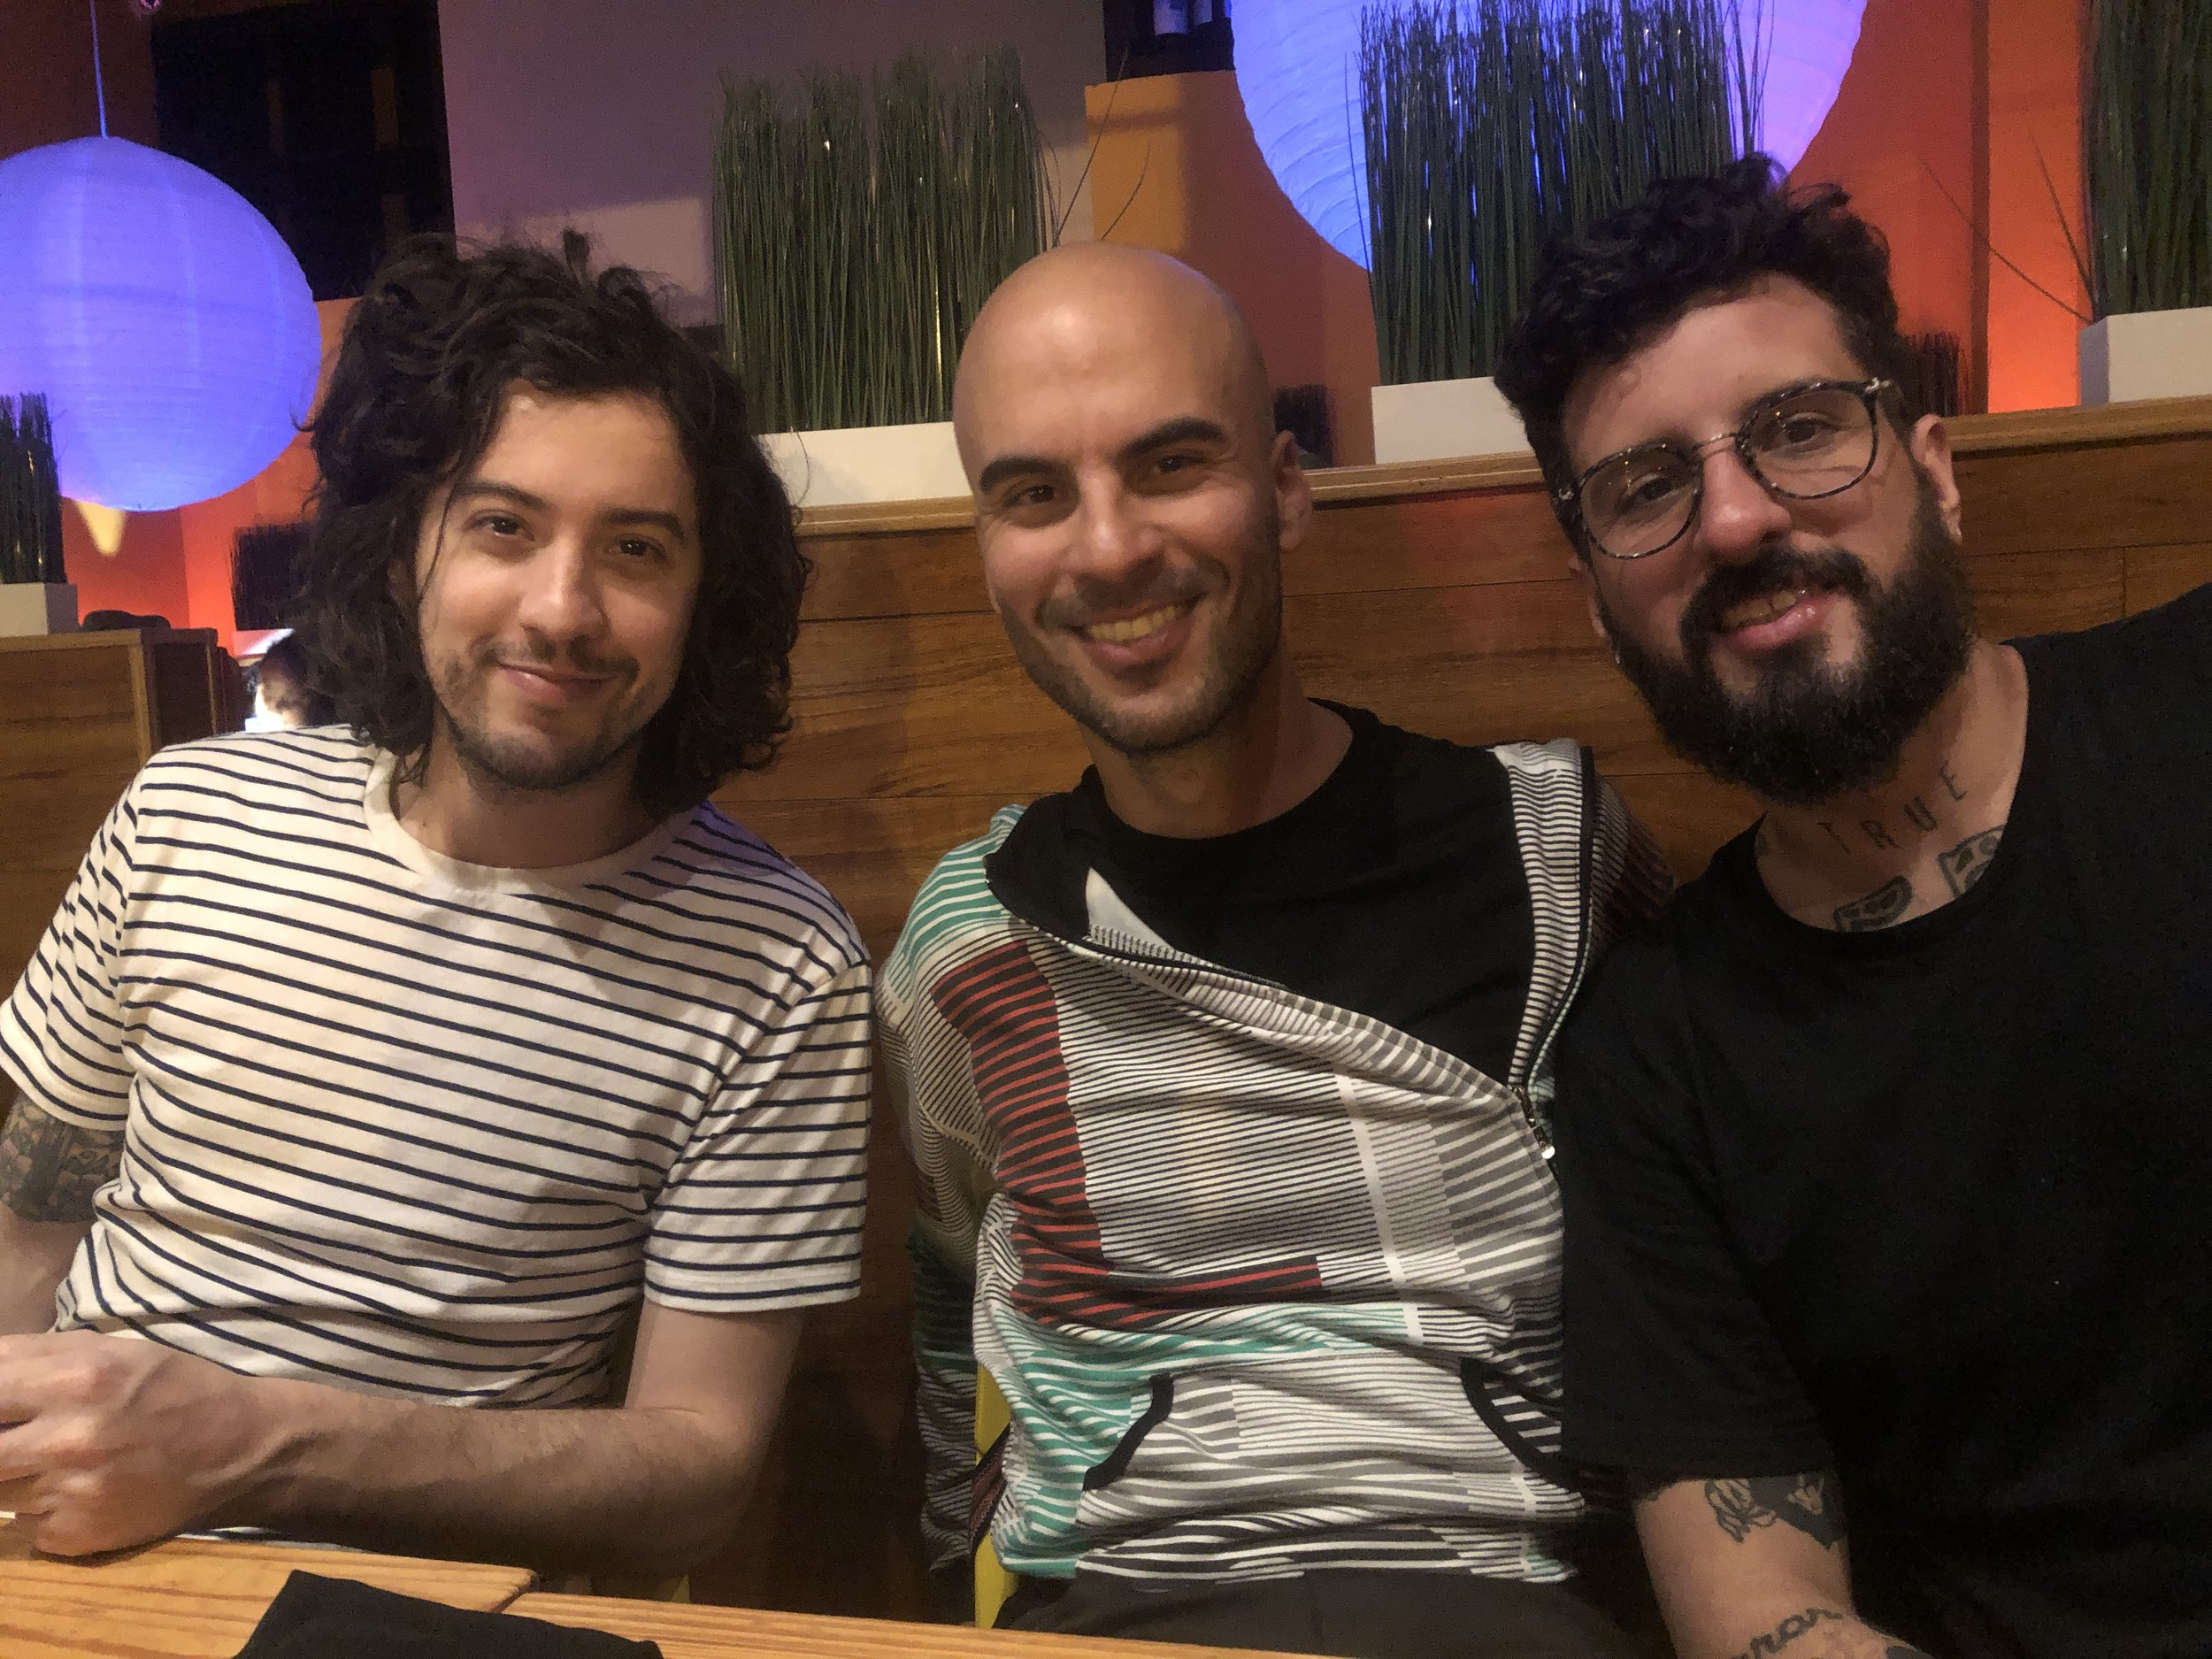 Pictured left to right; Josh Reames (NYC), Gili Avissar (Tel Aviv, Israel) and Bruno Miguel (Rio de Janeiro, Brazil)